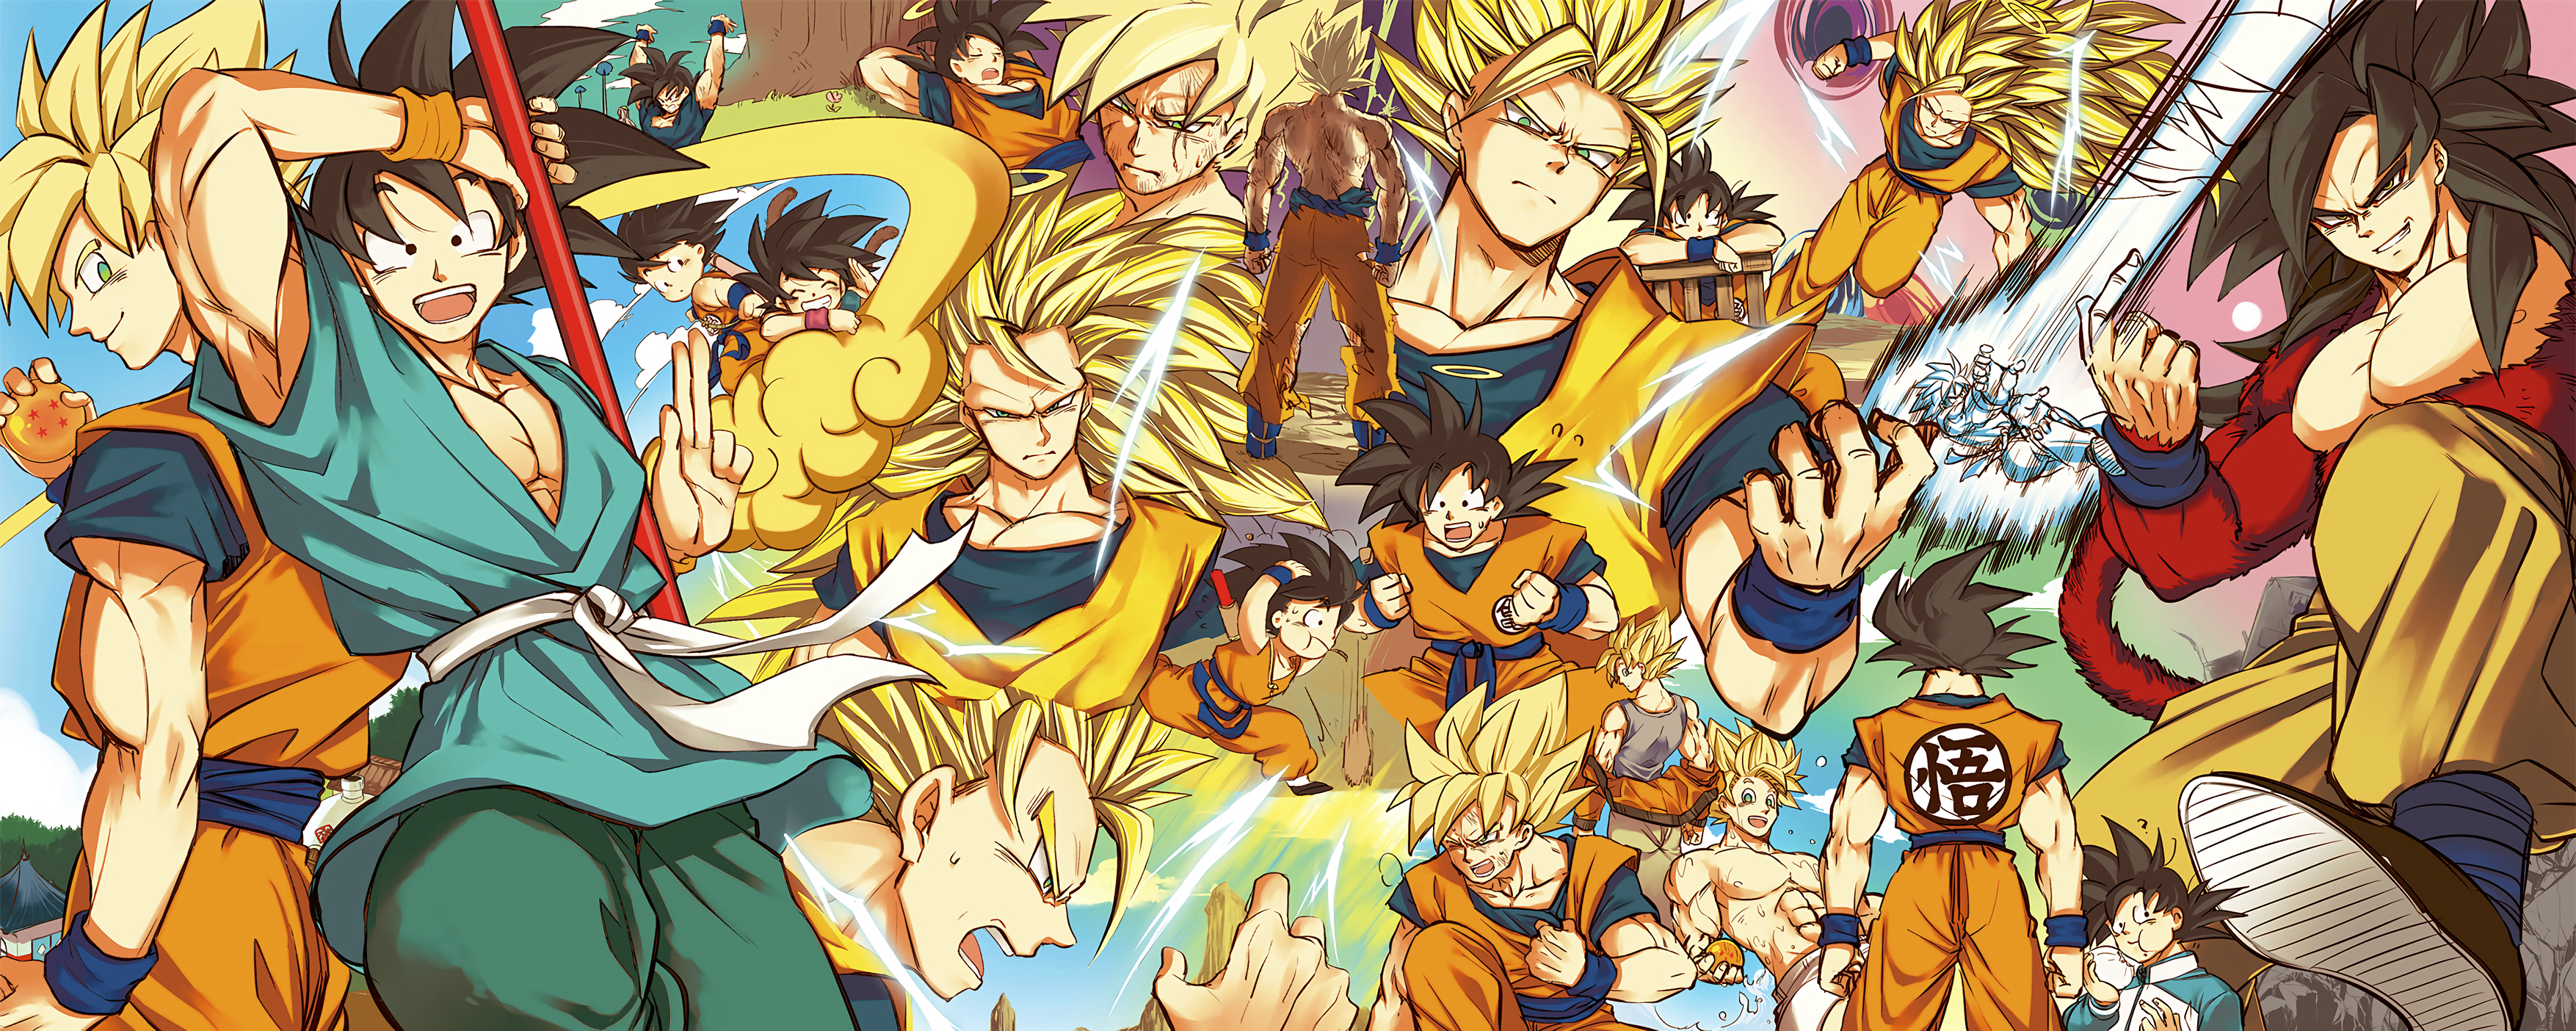 Son Goku Full HD Wallpaper And Background Image